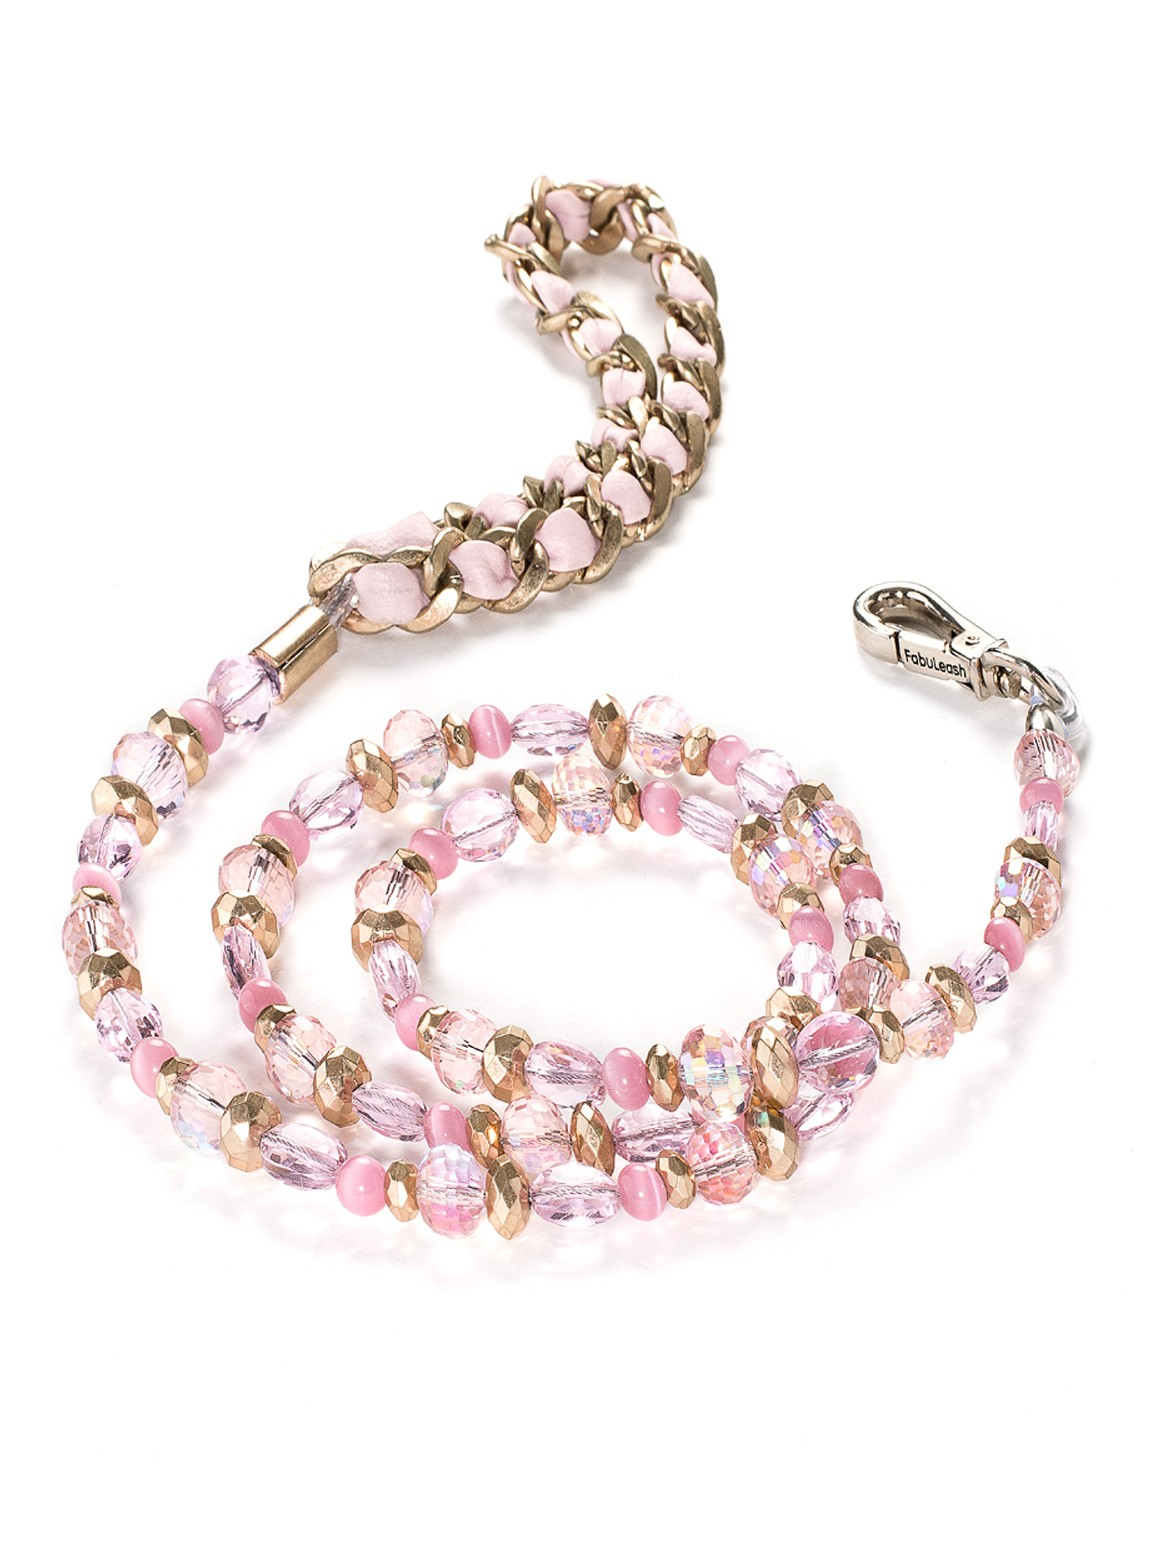 Fancy 5th Ave Rose Pink Beaded Dog Leash at Pet Stop Store